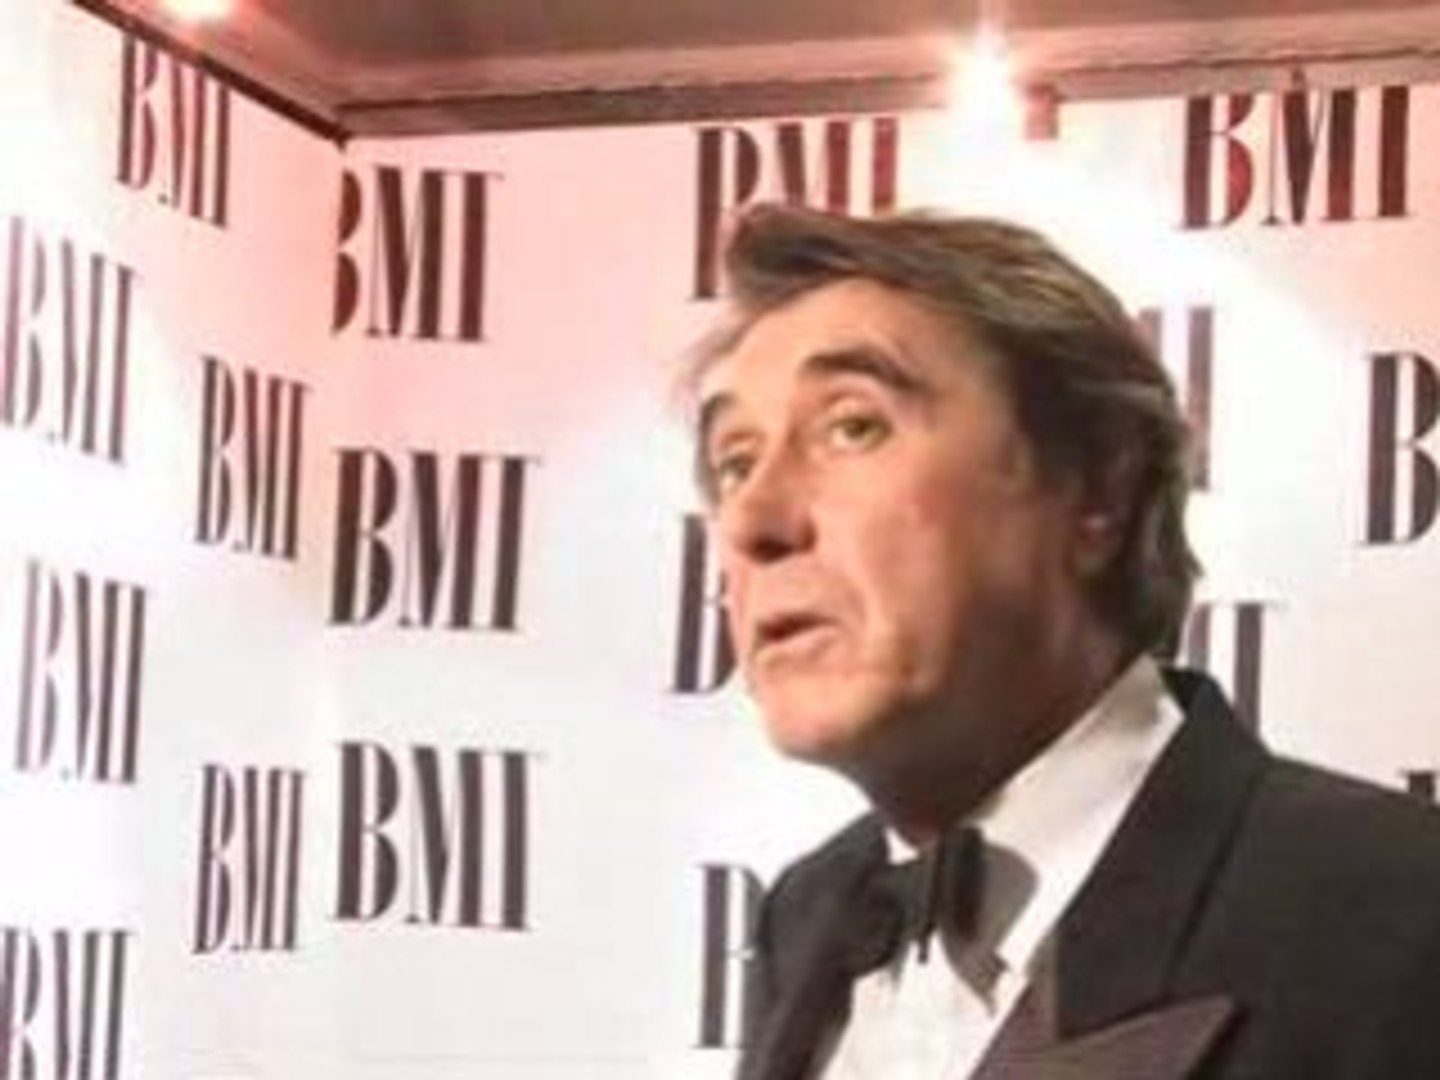 Bryan Ferry, Lily Allen & Roxette honoured at the BMI Awards